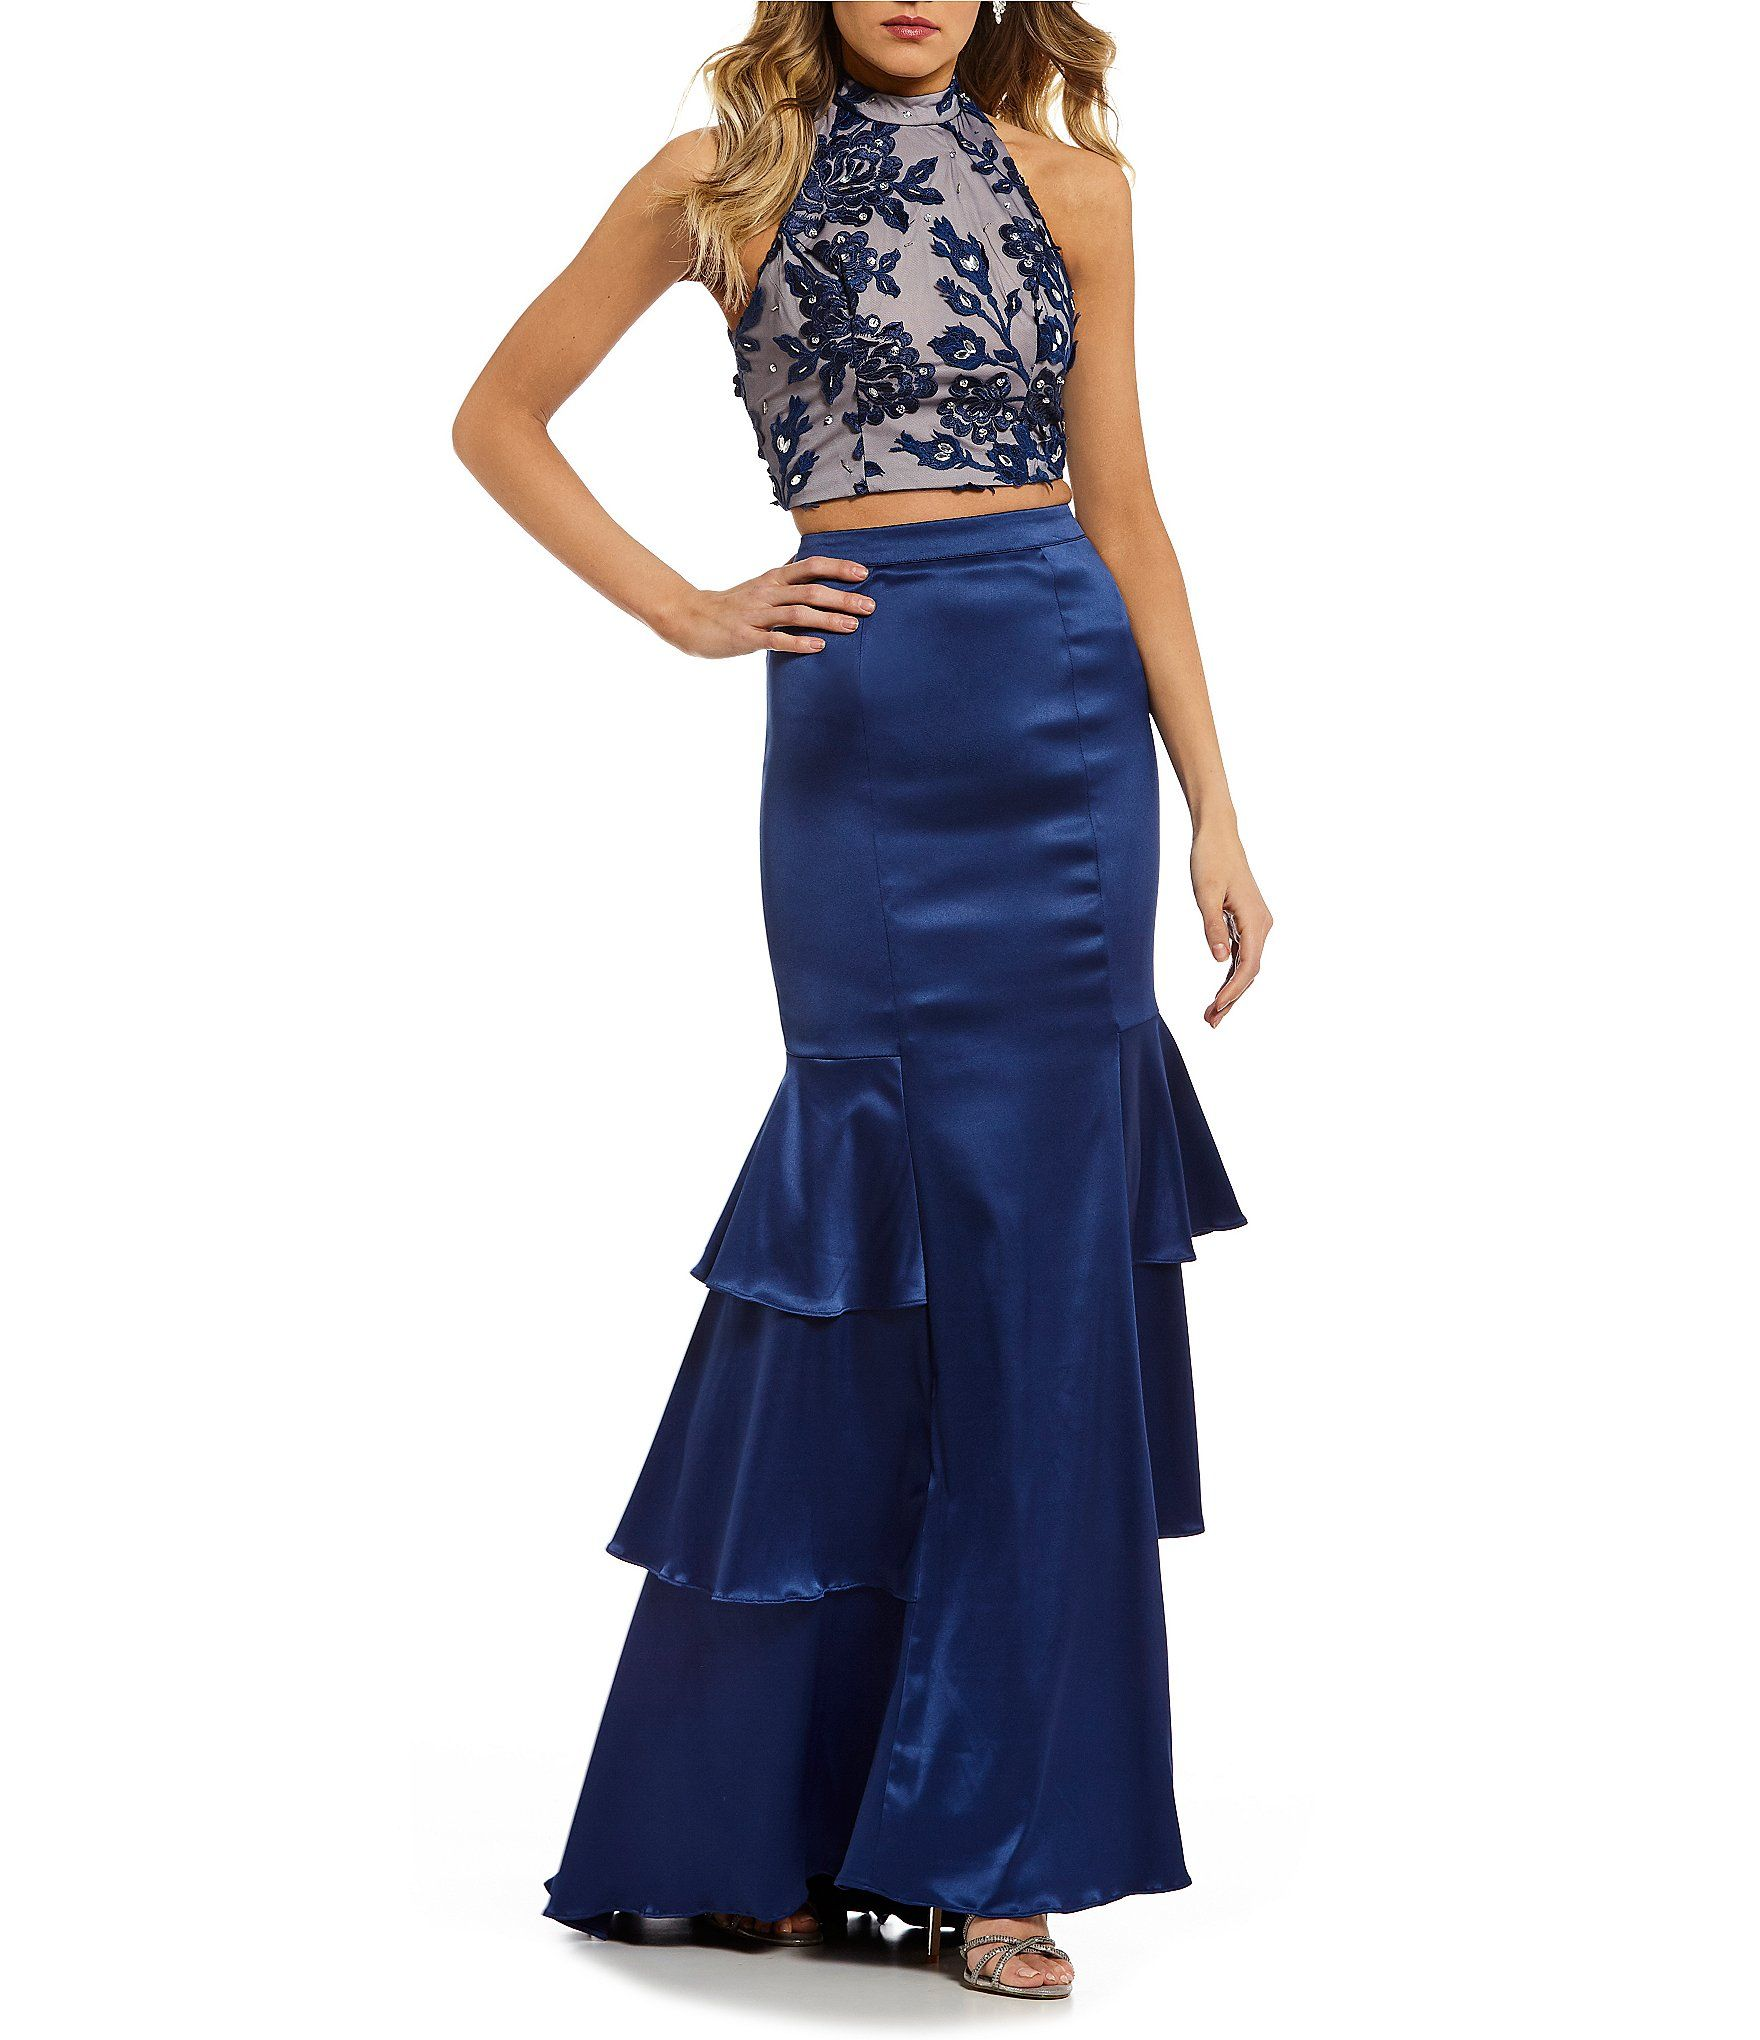 Sequin hearts embroidered top with tiered skirt twopiece dress